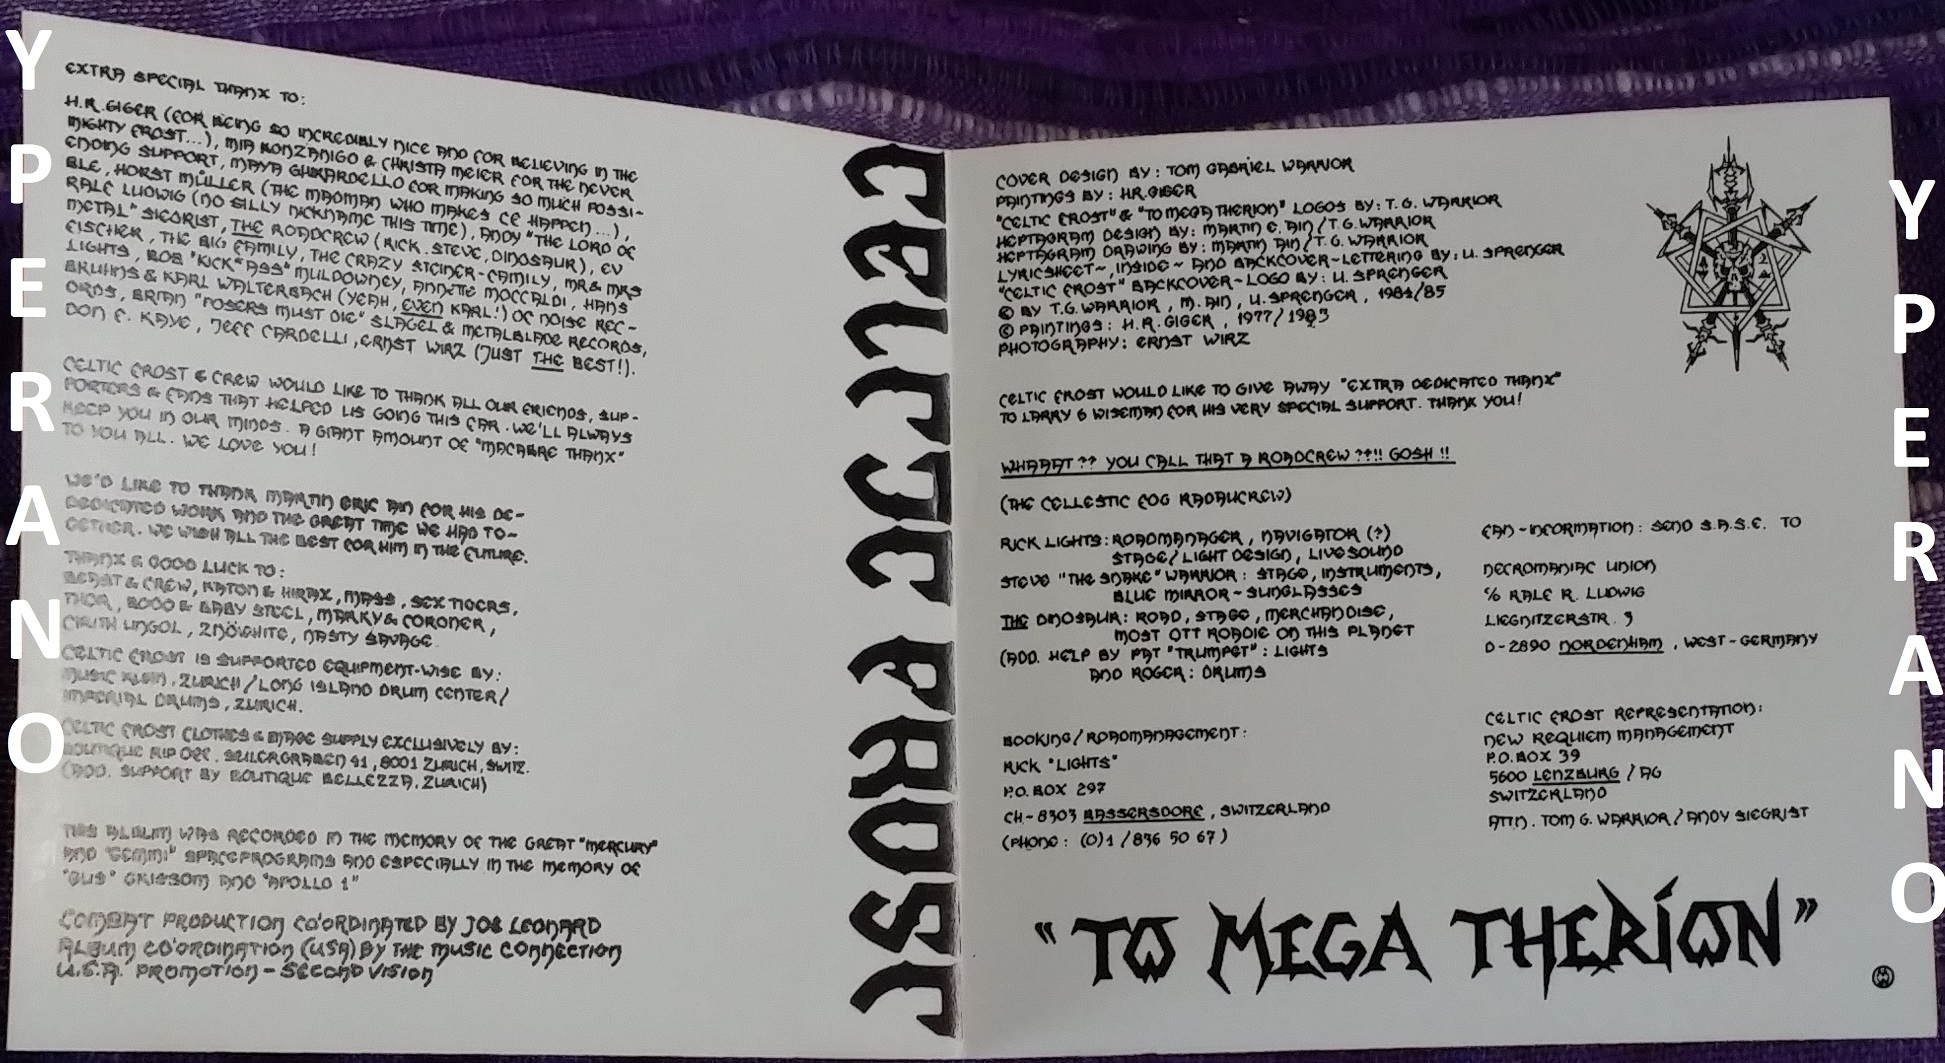 Celtic Frost To Mega Therion Cd Rare Combat Noise 1986